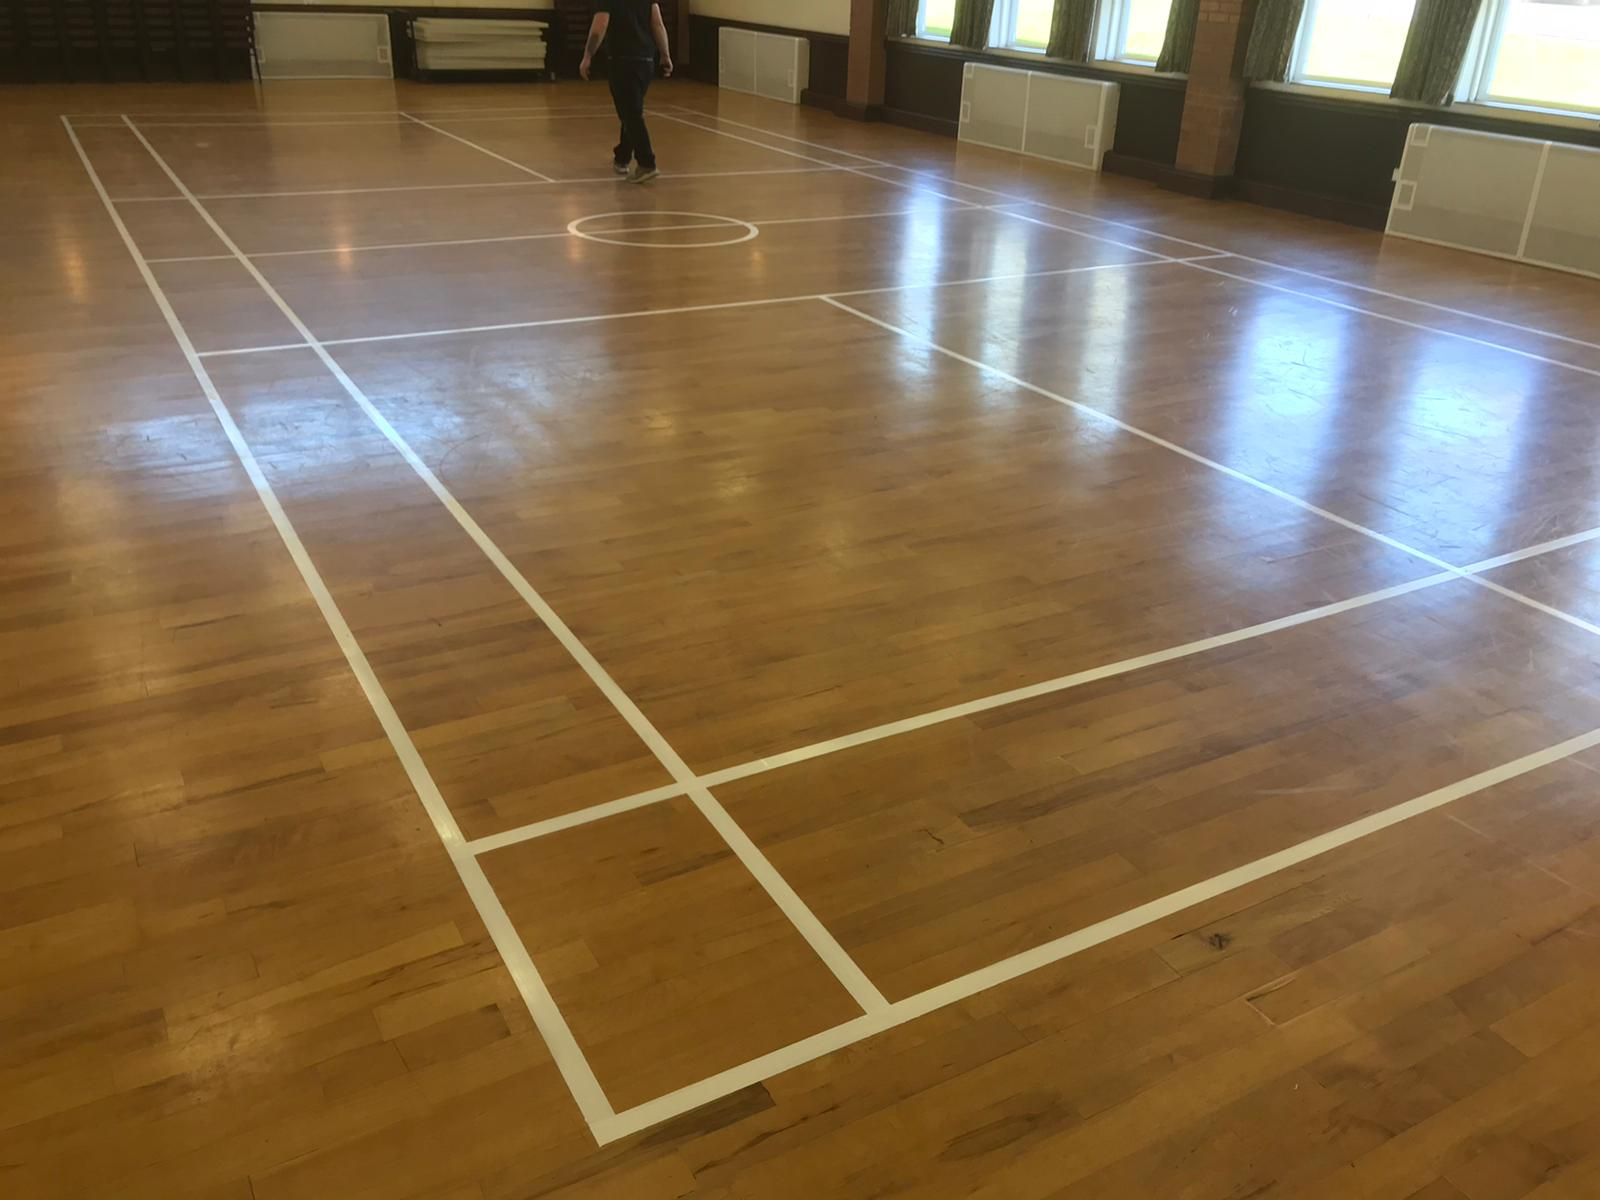 Refurbishment and Repair to an Indoor Sports Floor Timber Floor